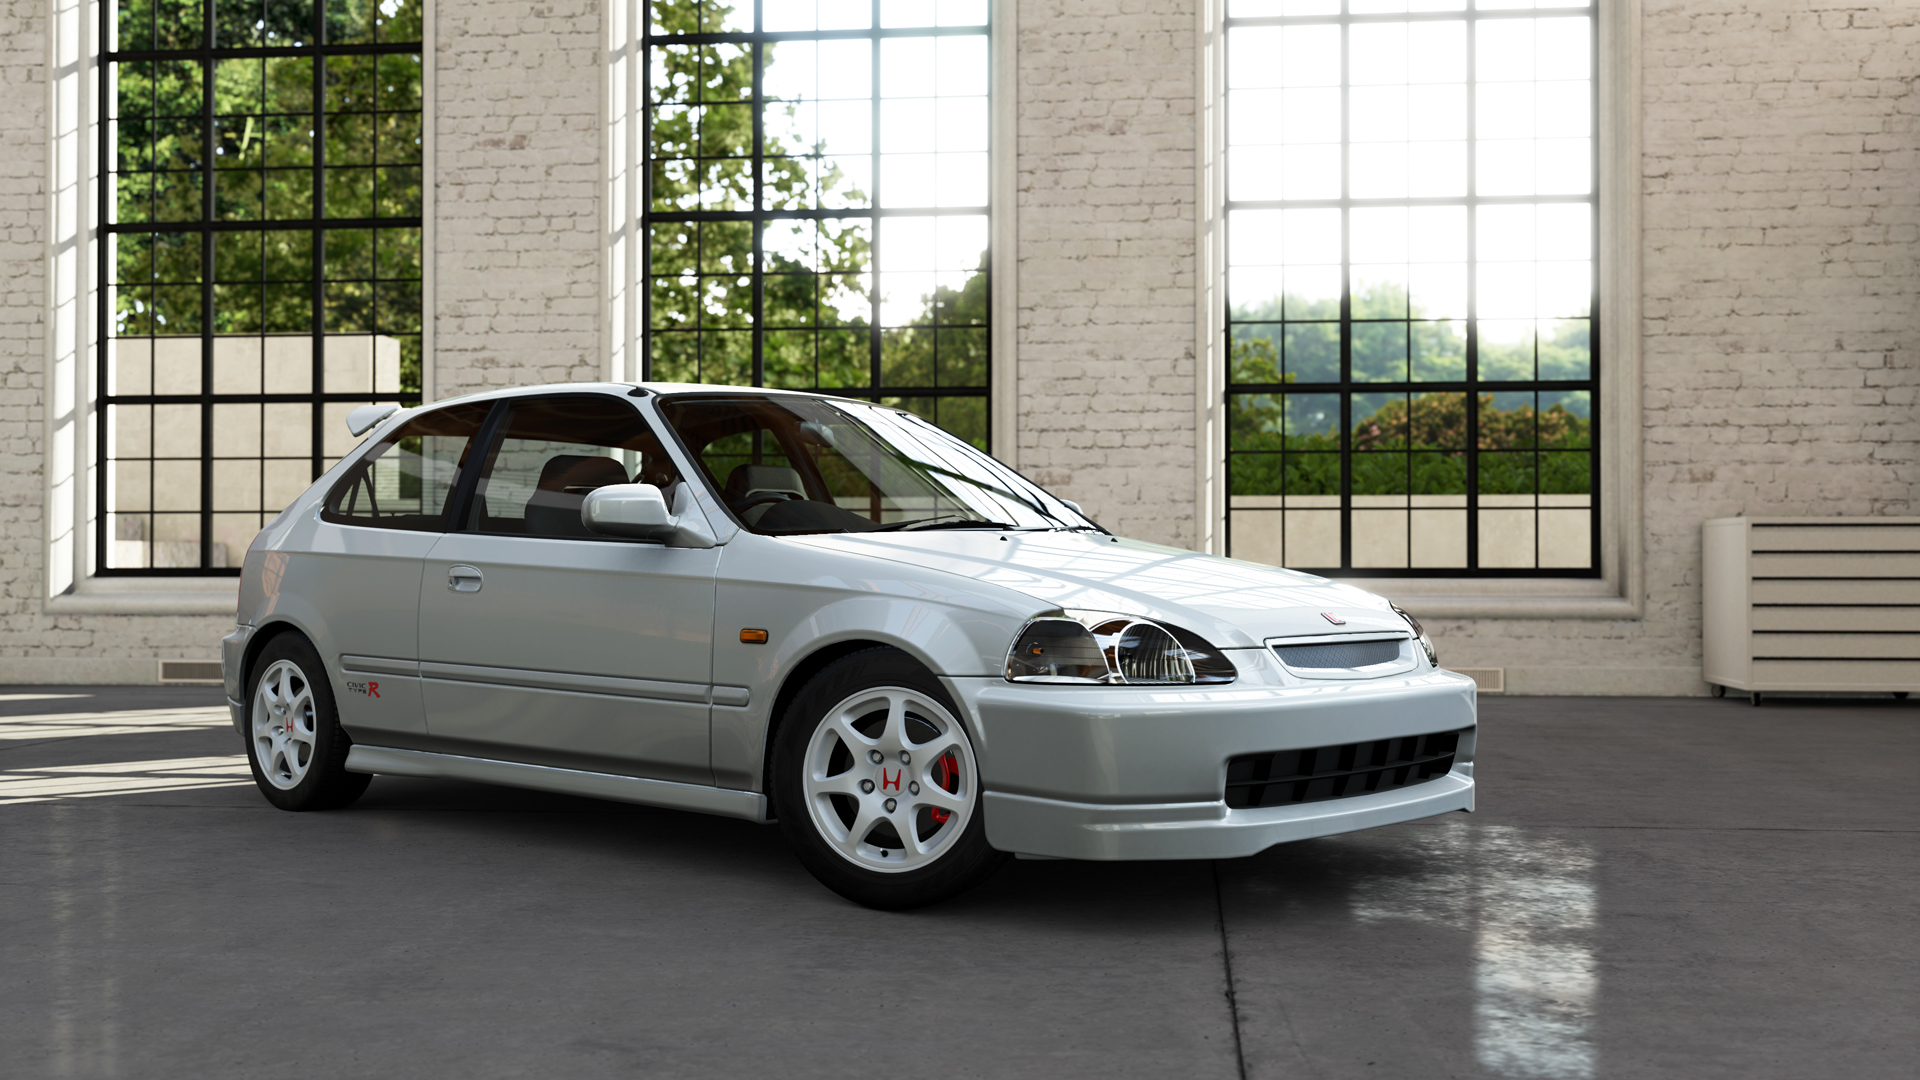 1997 Honda Civic type-r (ek9) - pictures, information and ...